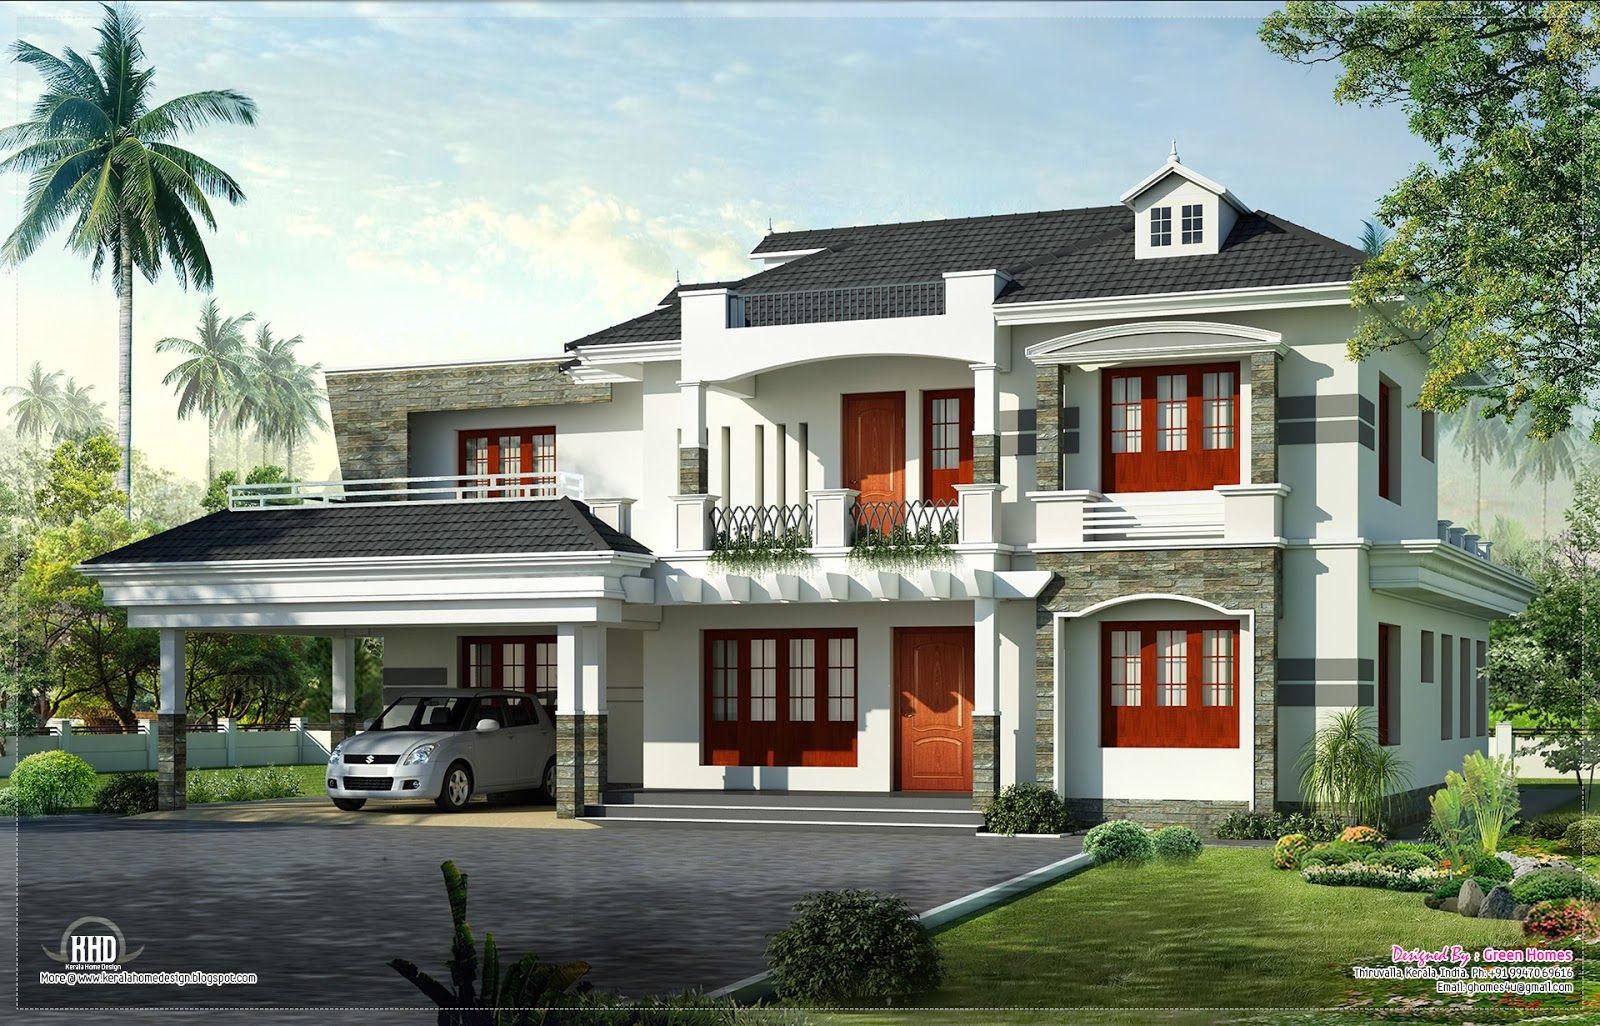 amazing designs for new homes new kerala home - New Design Homes